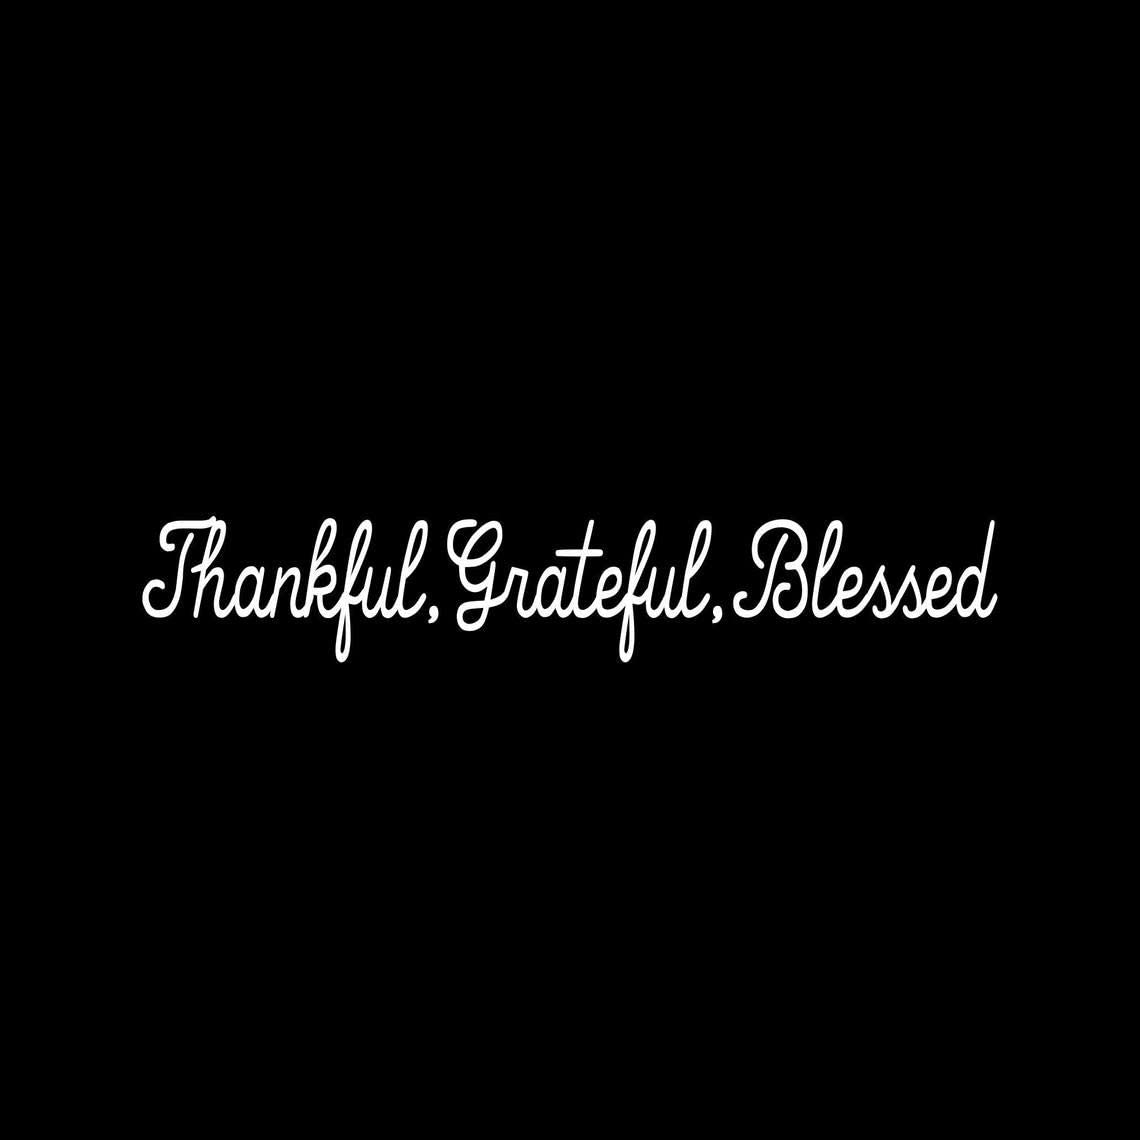 Window Decal Car Sticker -Thankful Grateful Blessed Decal Funny Car Vinyl Decal Laptop Car Stickers For Truck Bumper, Auto Stickers, Window Sticker